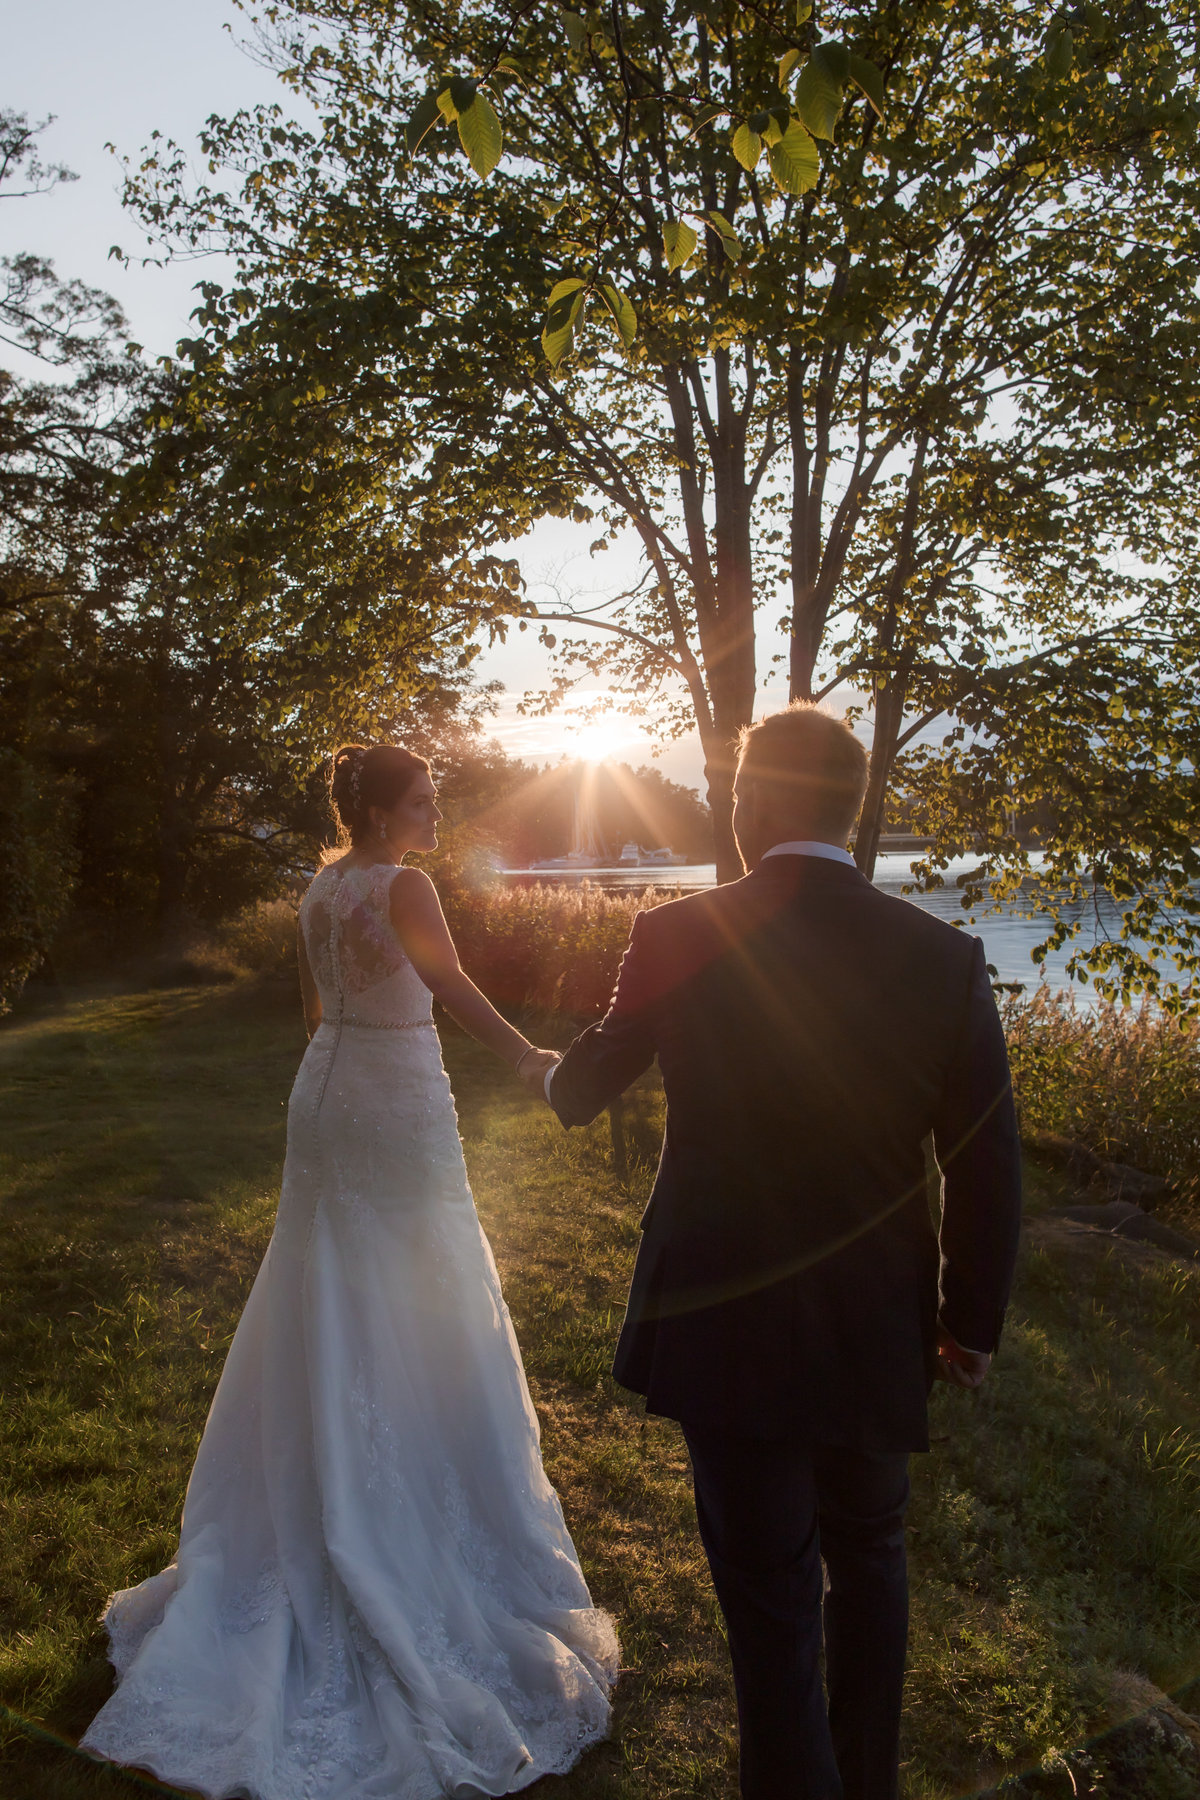 Golden hour walks, where the bride drags her now husband , after her walking towards the sun.